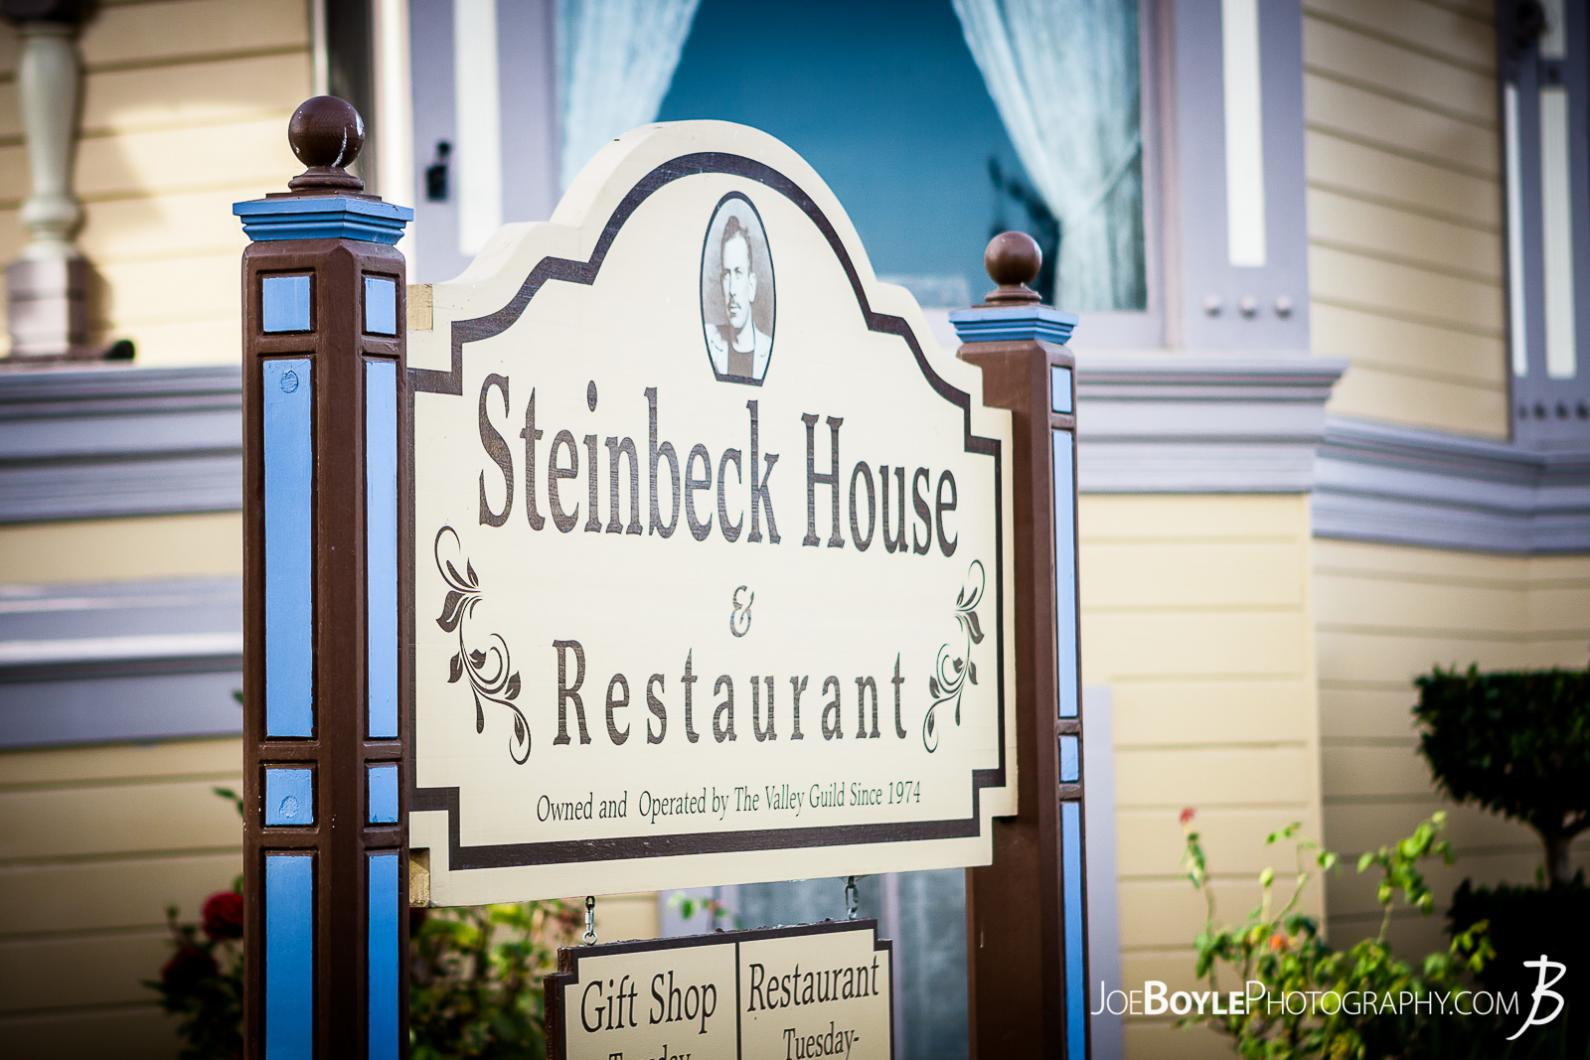 steinbeck-house-and-restaurant-sign